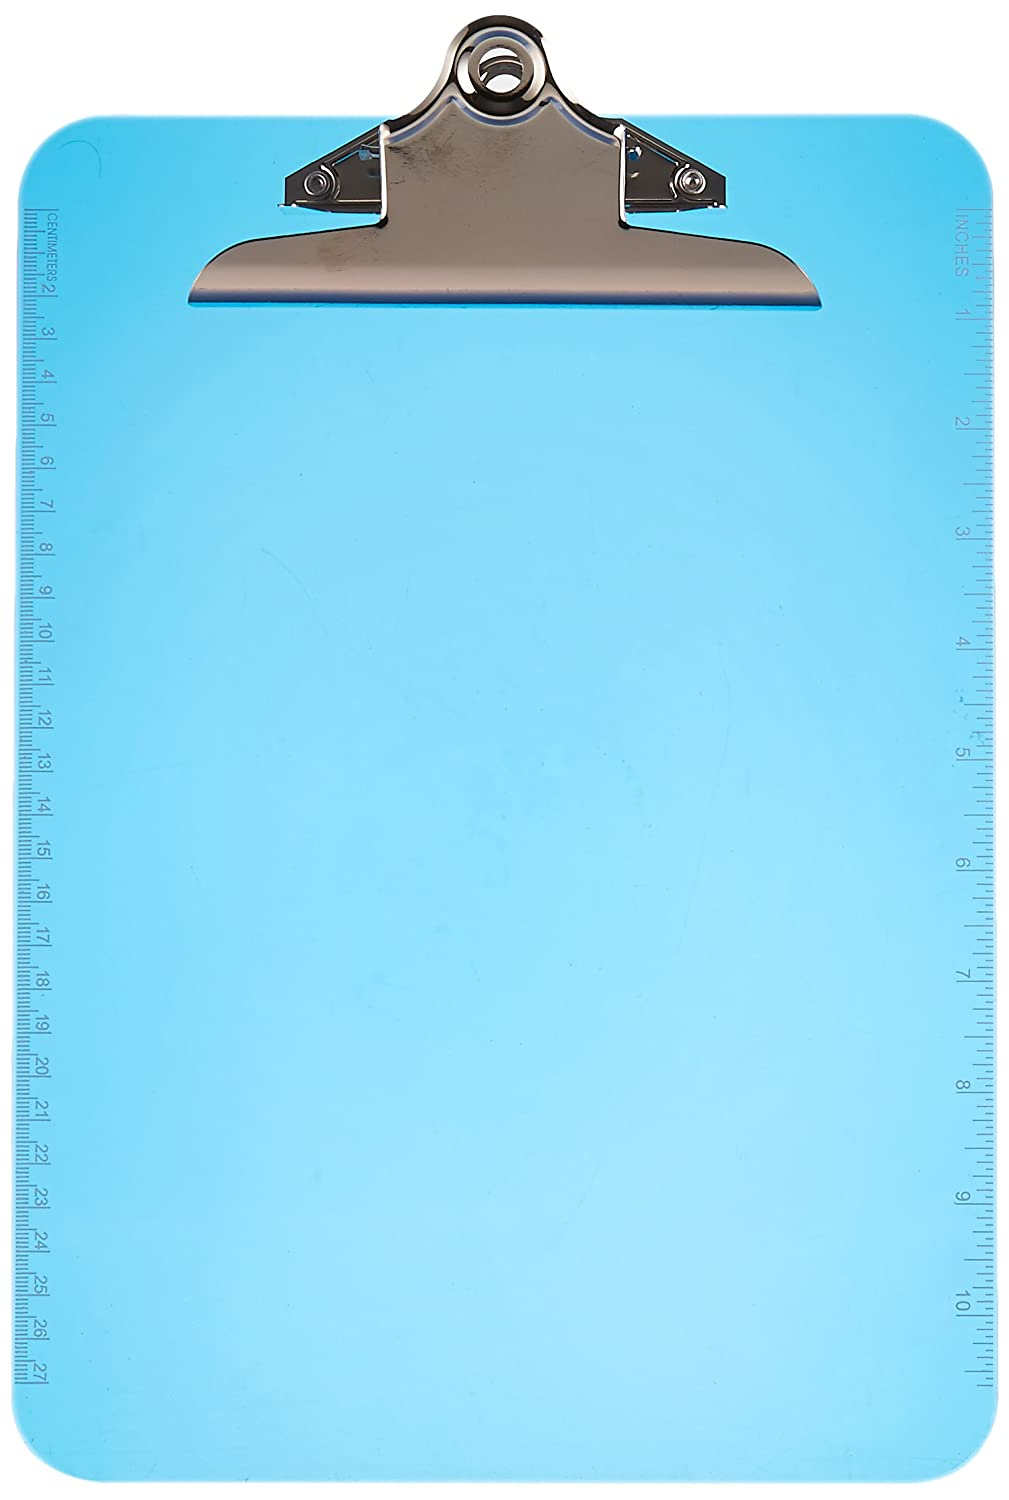 Sparco Transparent Plastic Clipboard, 9 x 12-1/2 Inches, Blue (SPR01863)